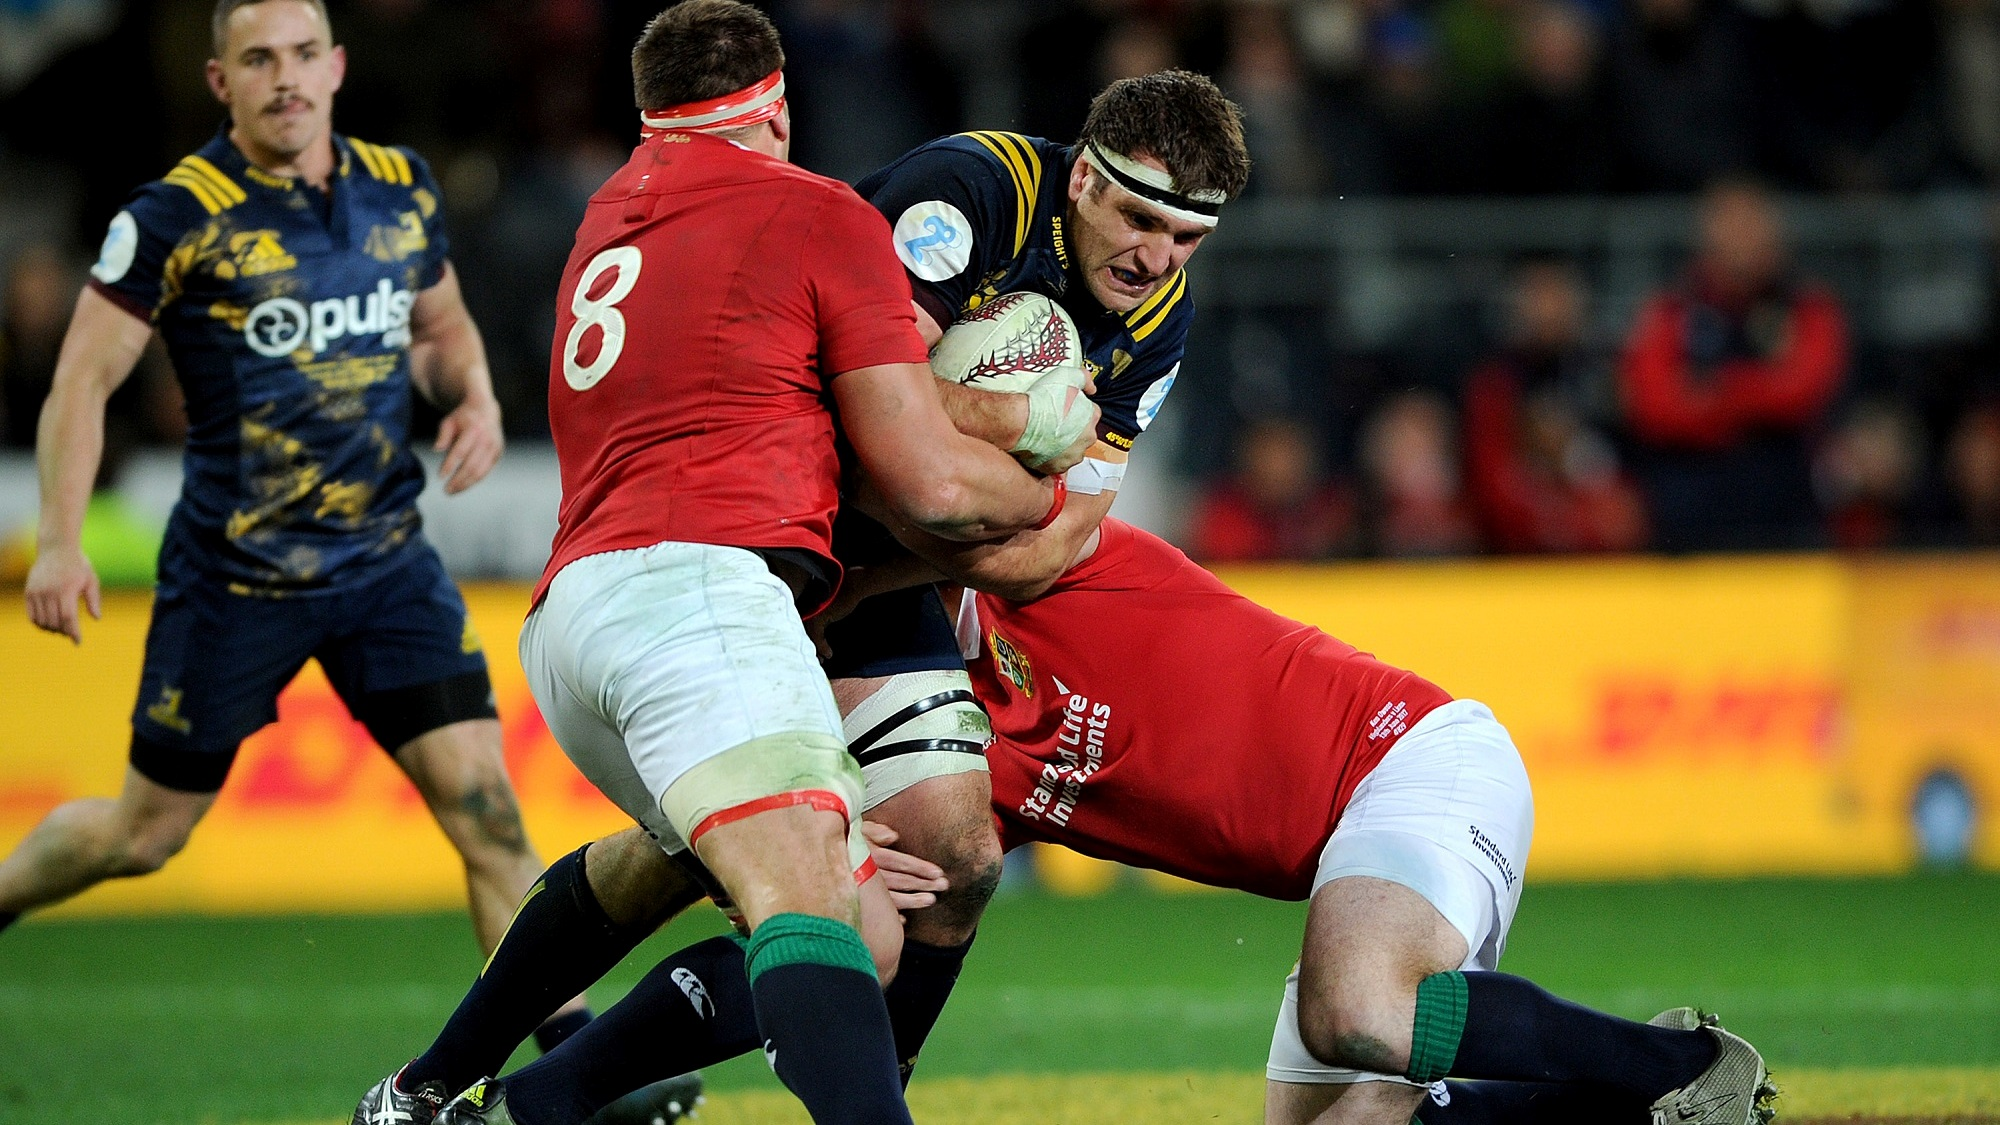 Delighted skipper Whitelock hails Highlanders' attitude after Lions win